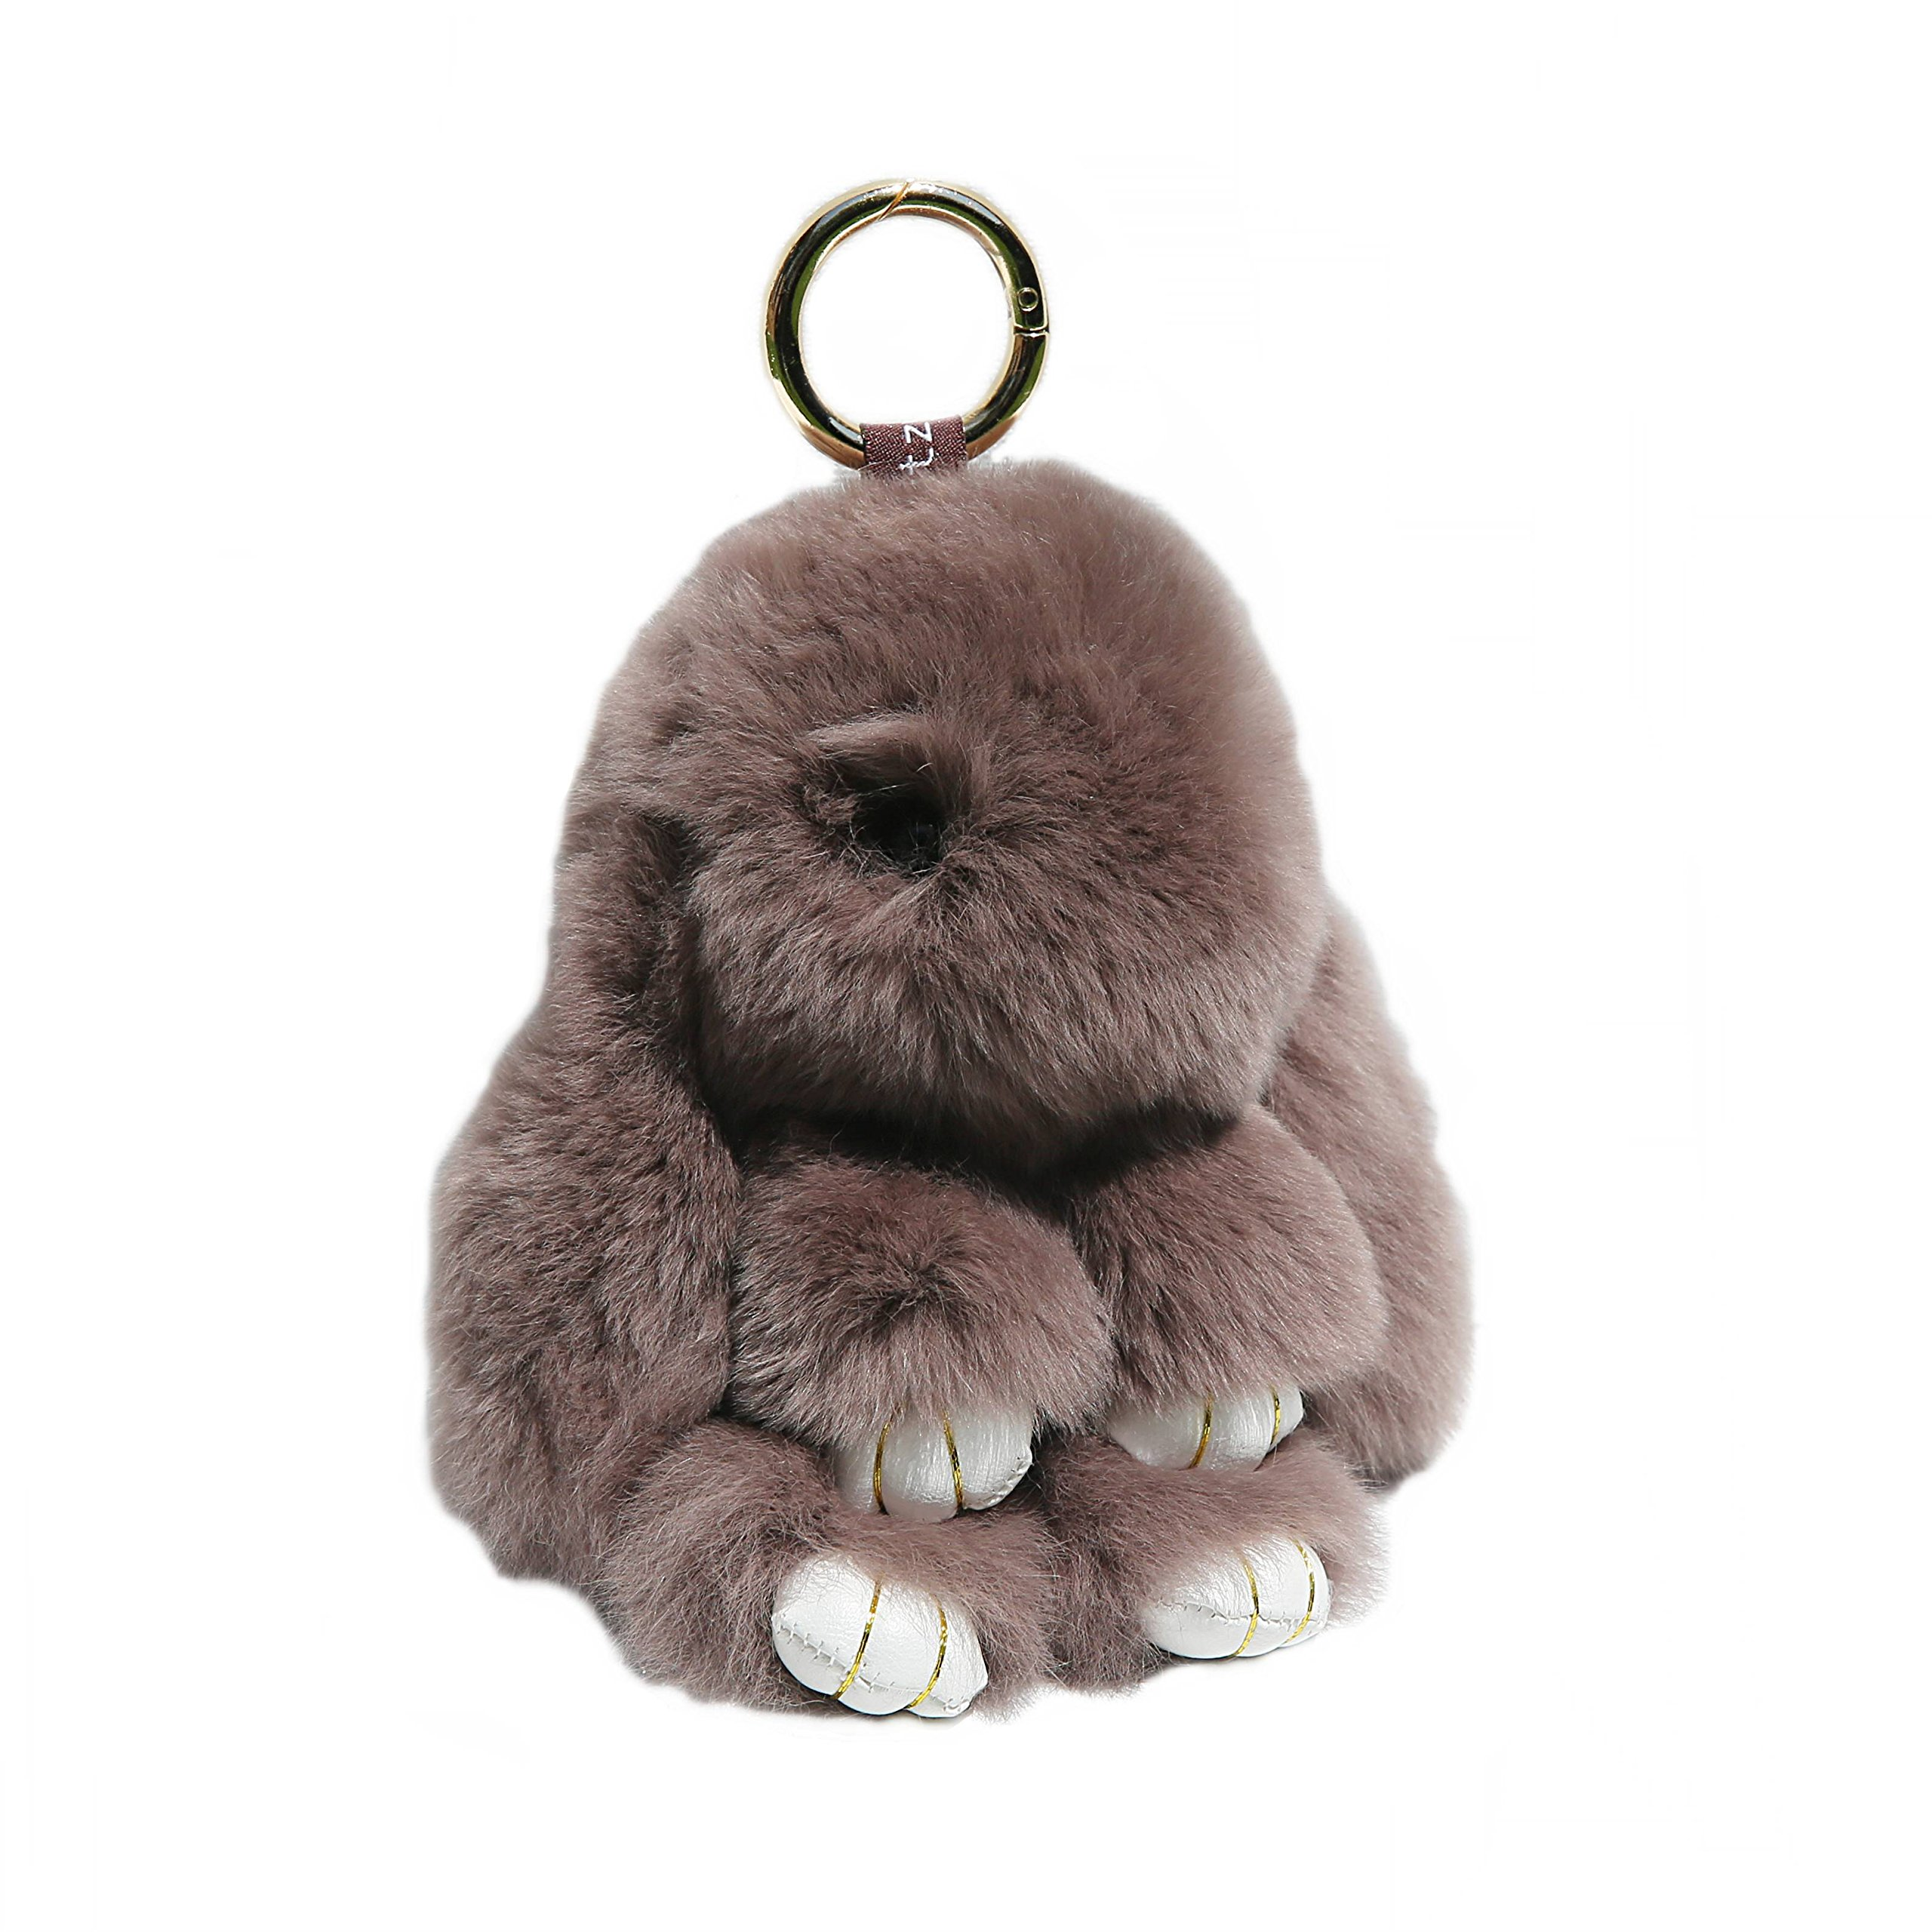 RitzyBay Handmade Rex Rabbit Fur Bunny Keychain with RitzyBay GiftBox (Large, DustyBrown)